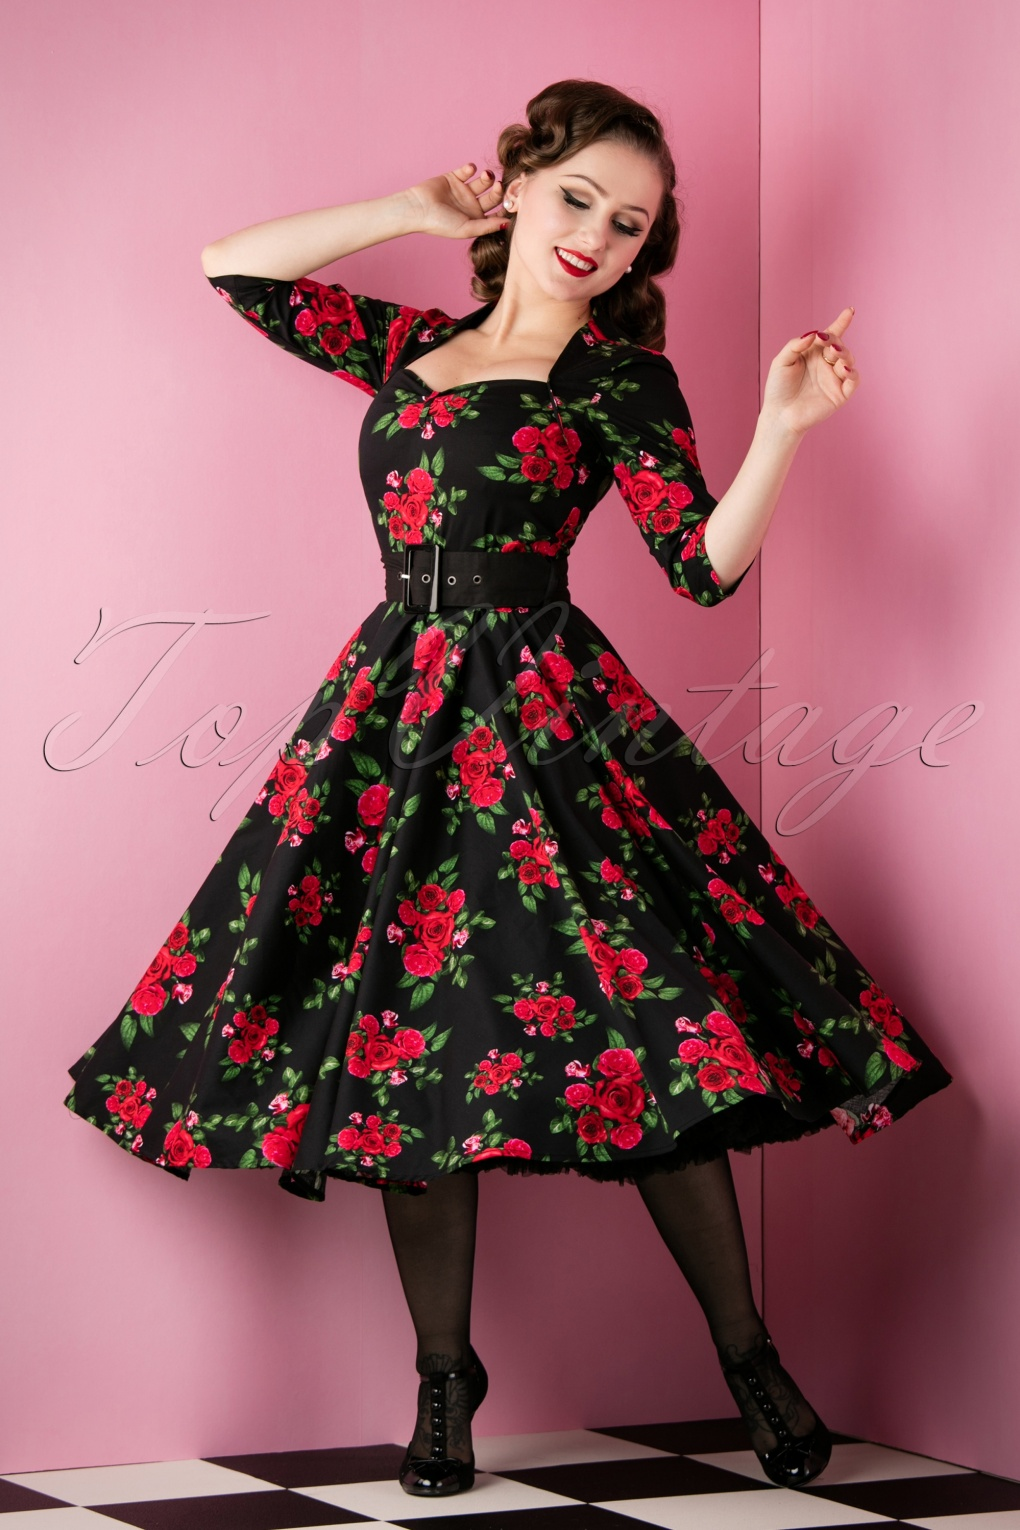 1940s Pinup Dresses for Sale Eternity 50s Black Swing Dress Red Roses £61.96 AT vintagedancer.com